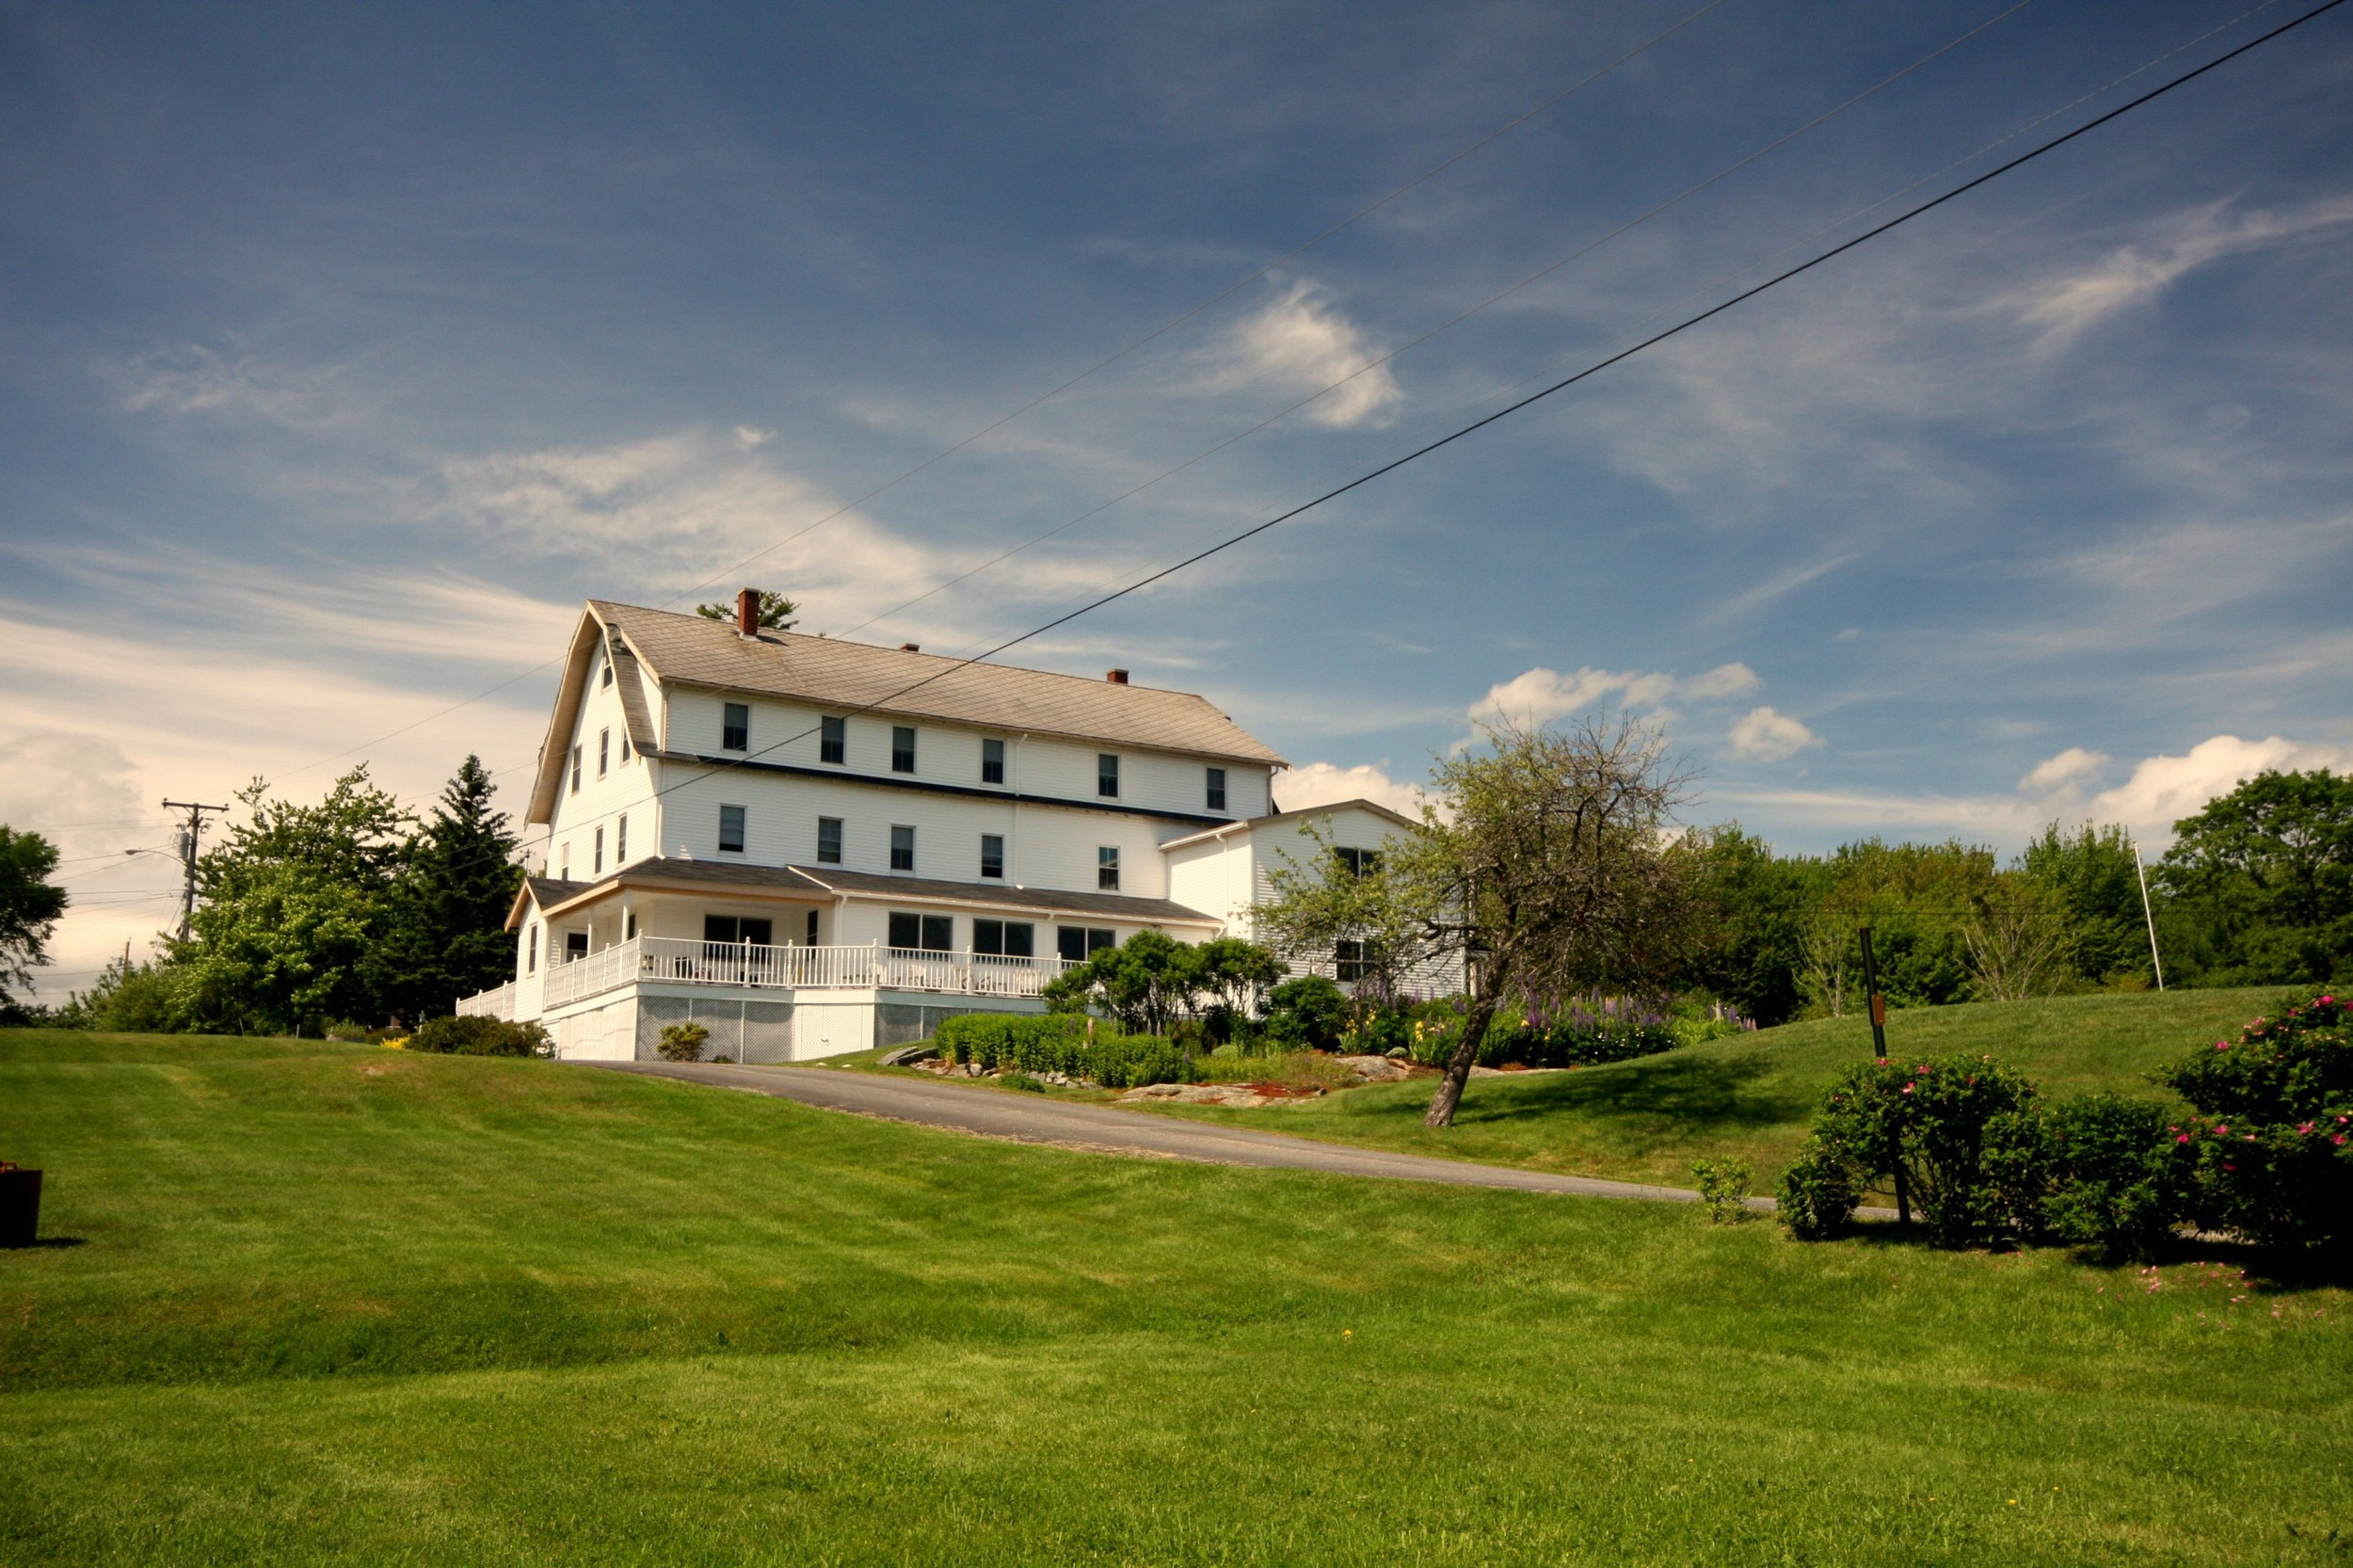 front of inn and lawn - Copy.jpg